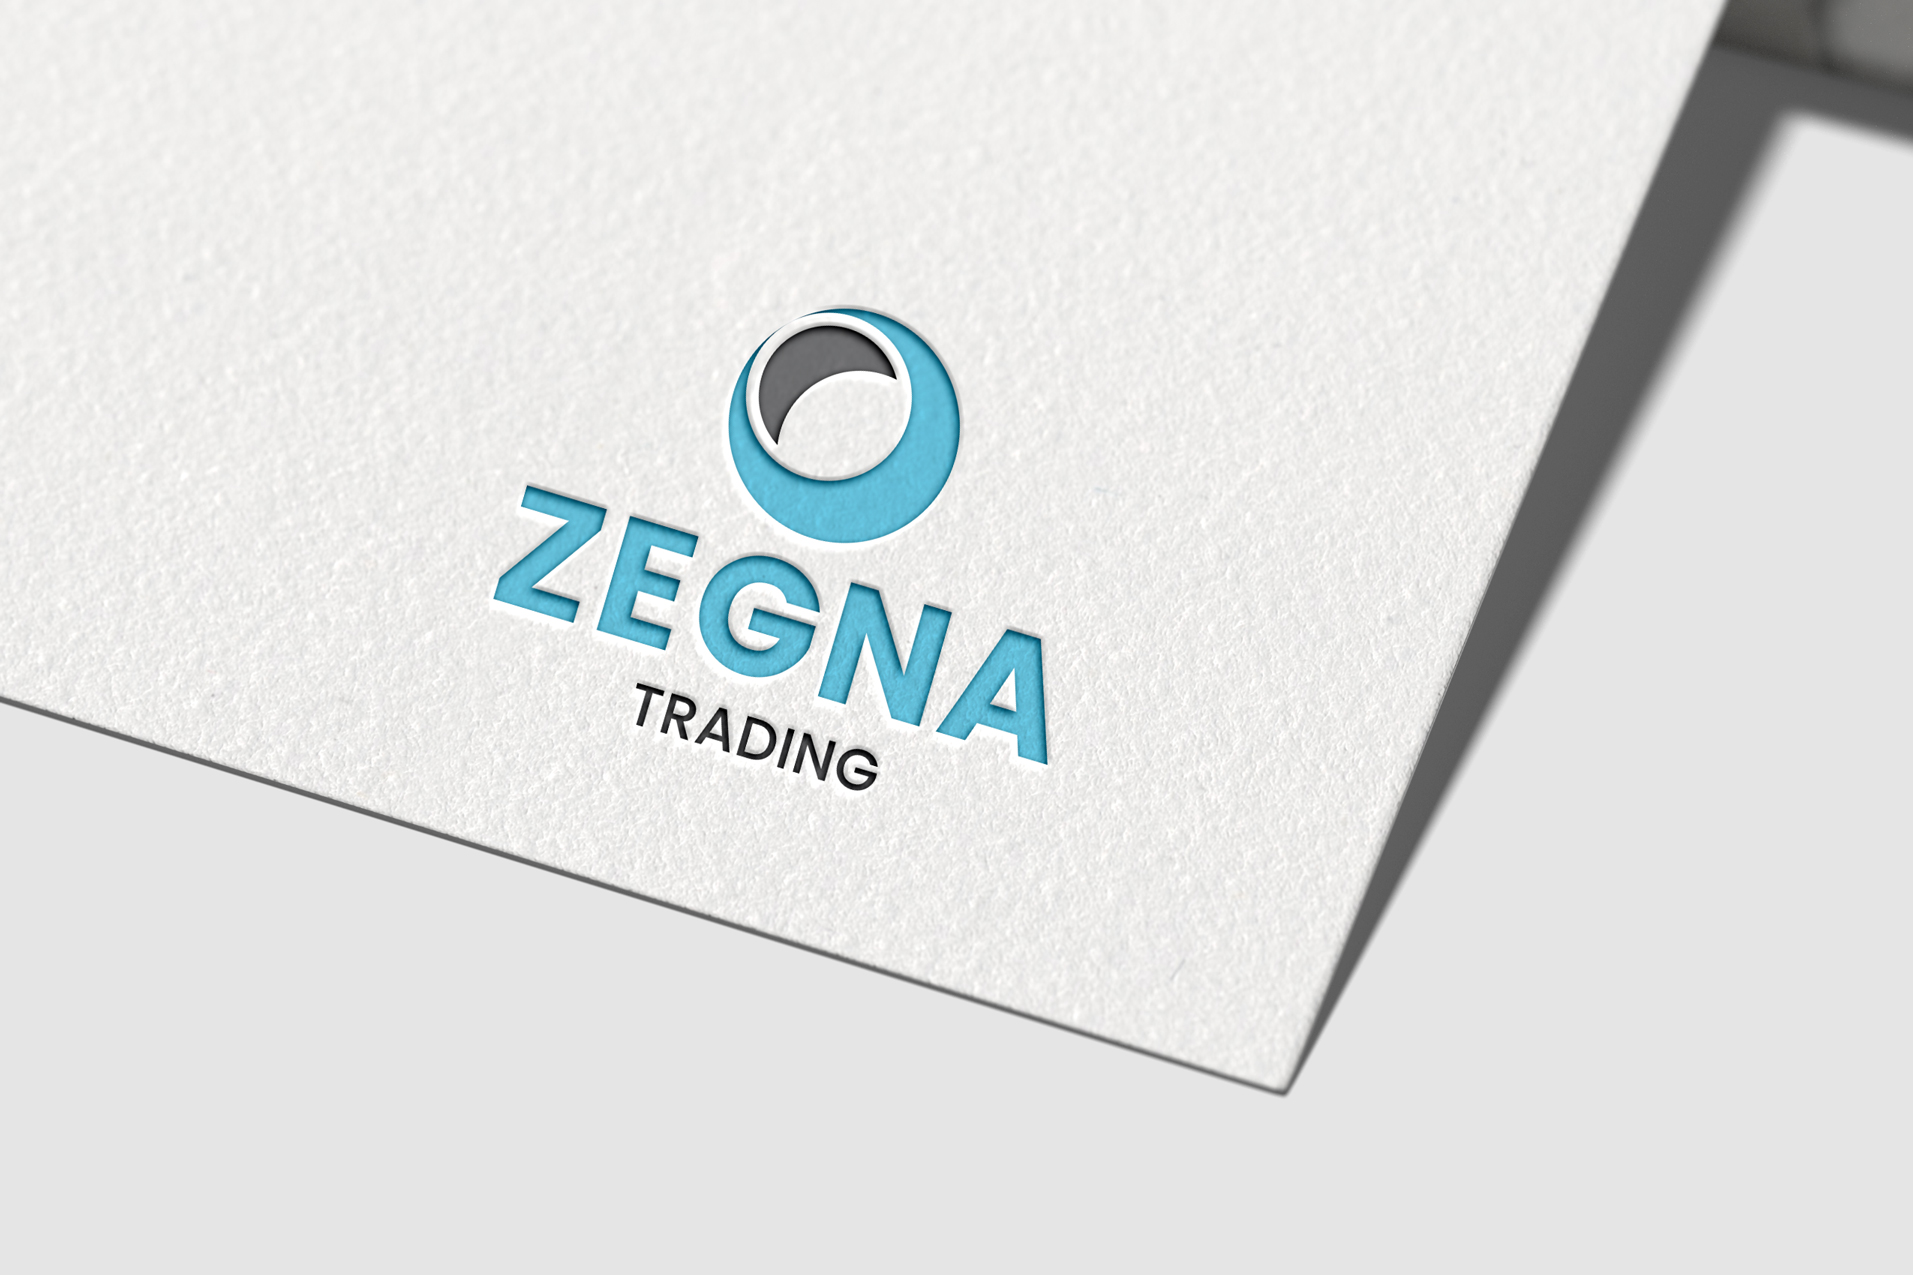 Zegna-Trading-logo-on-paper